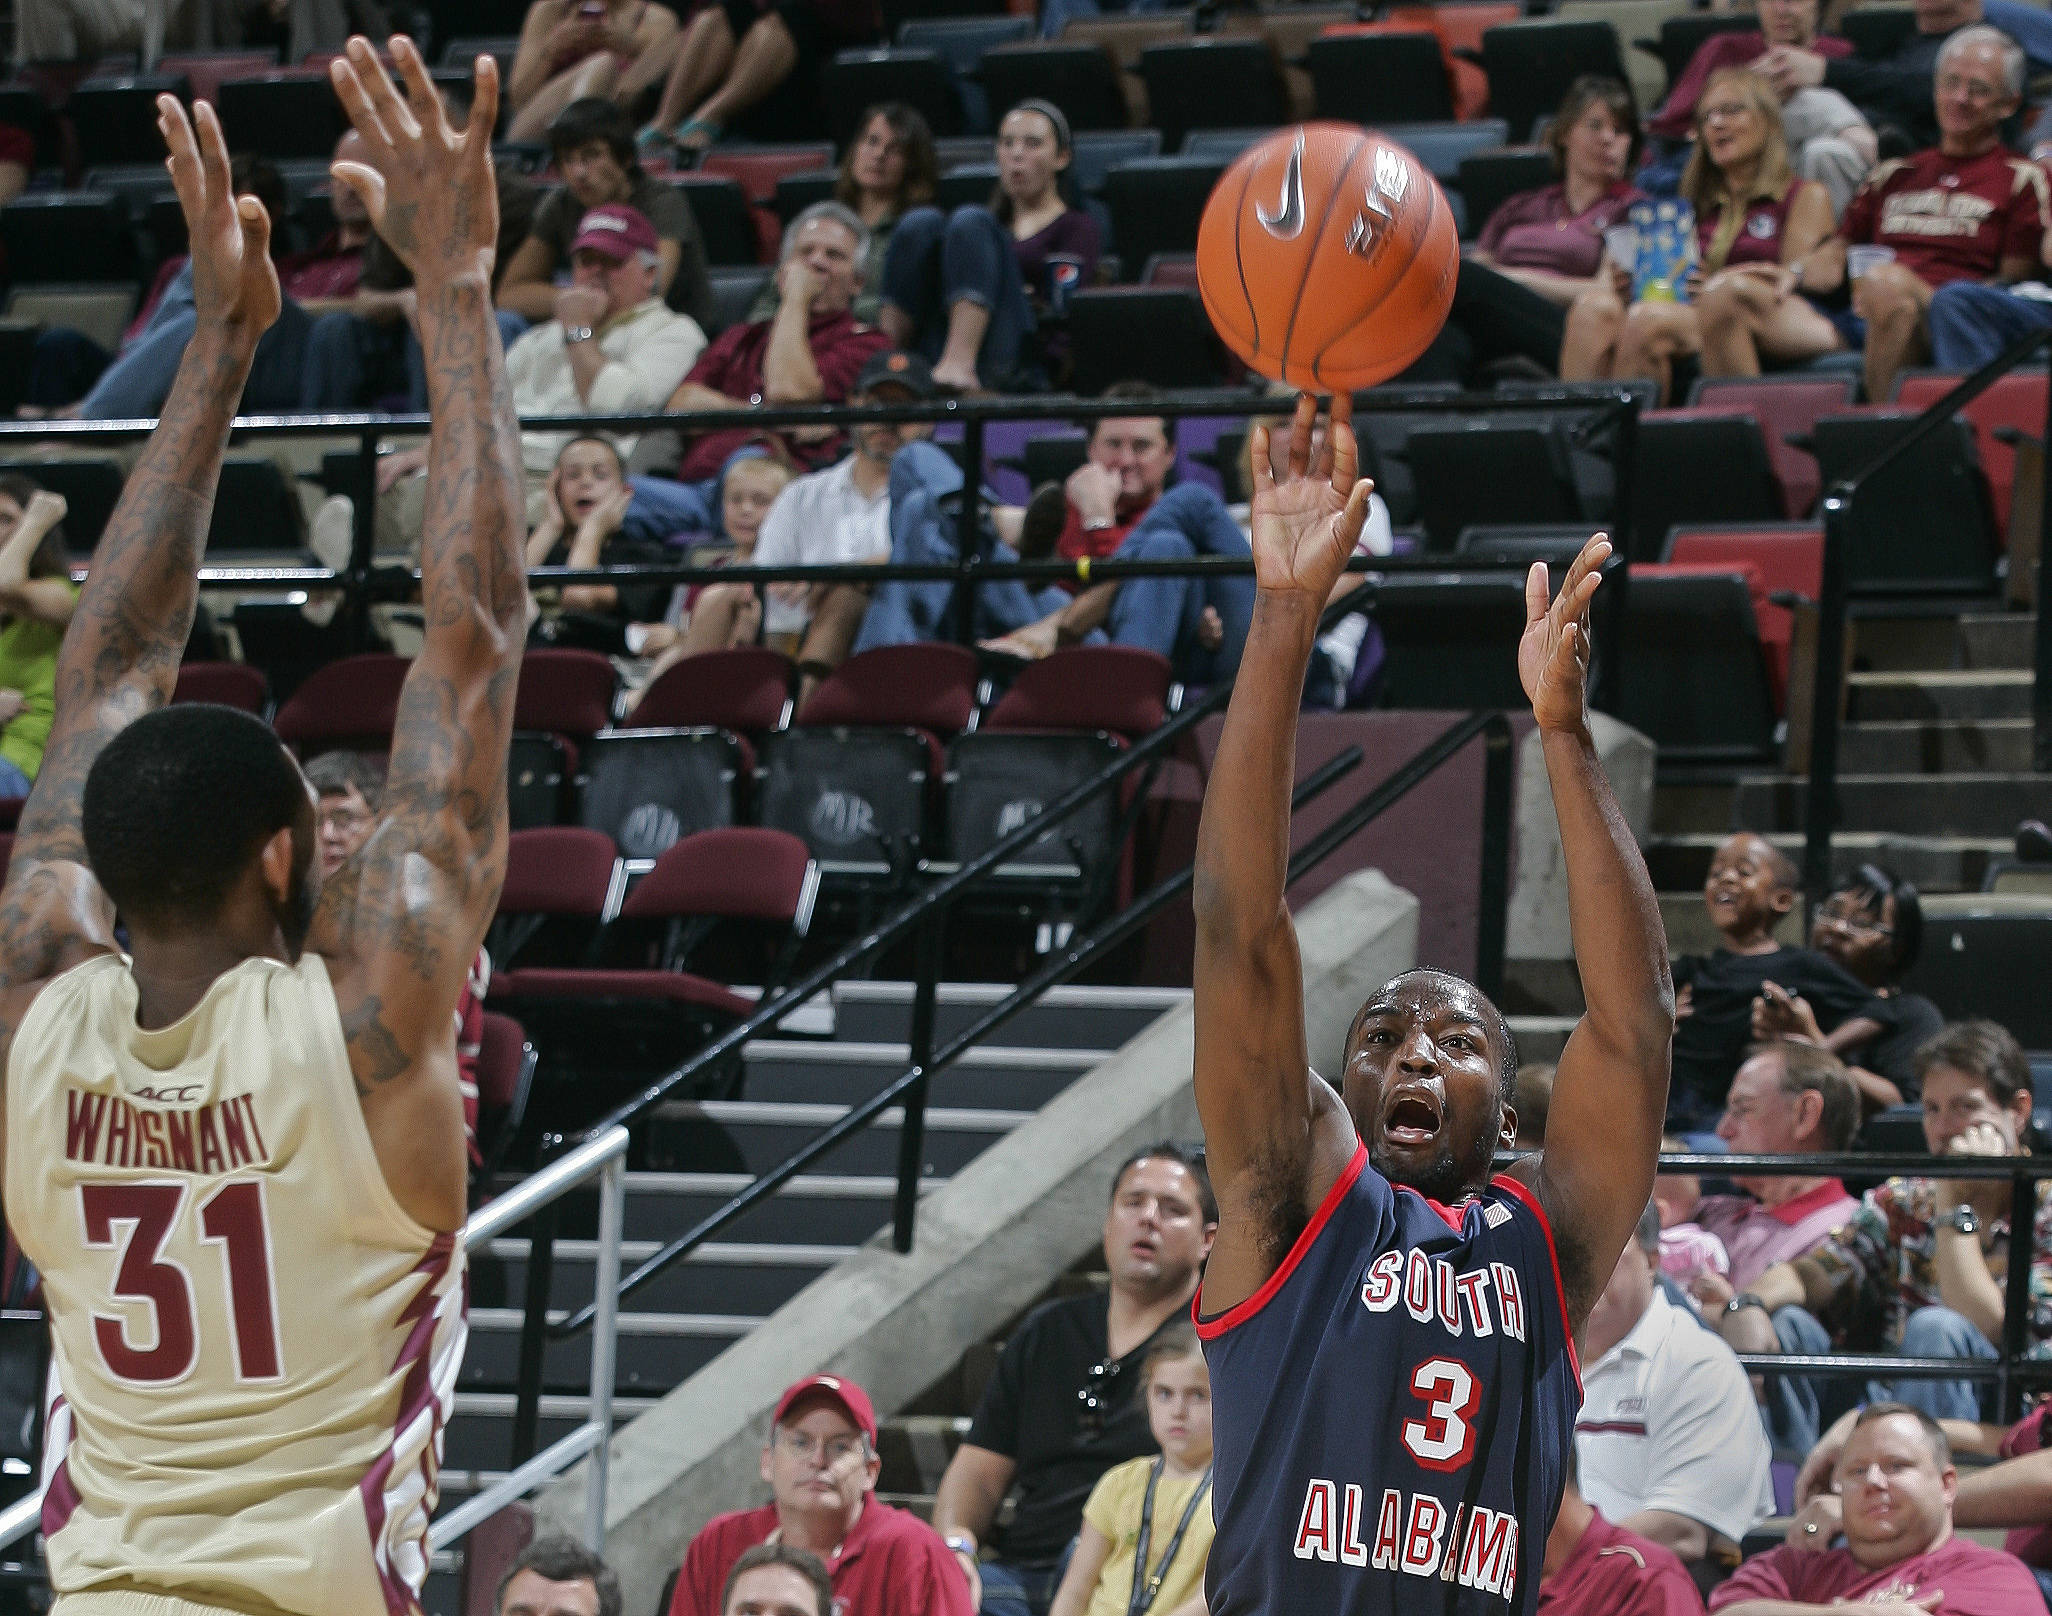 Florida State guard Terry Whisnant (31) pressures South Alabama guard Xavier Roberson (3) into missing a three-point shot. (AP Photo/Phil Sears)